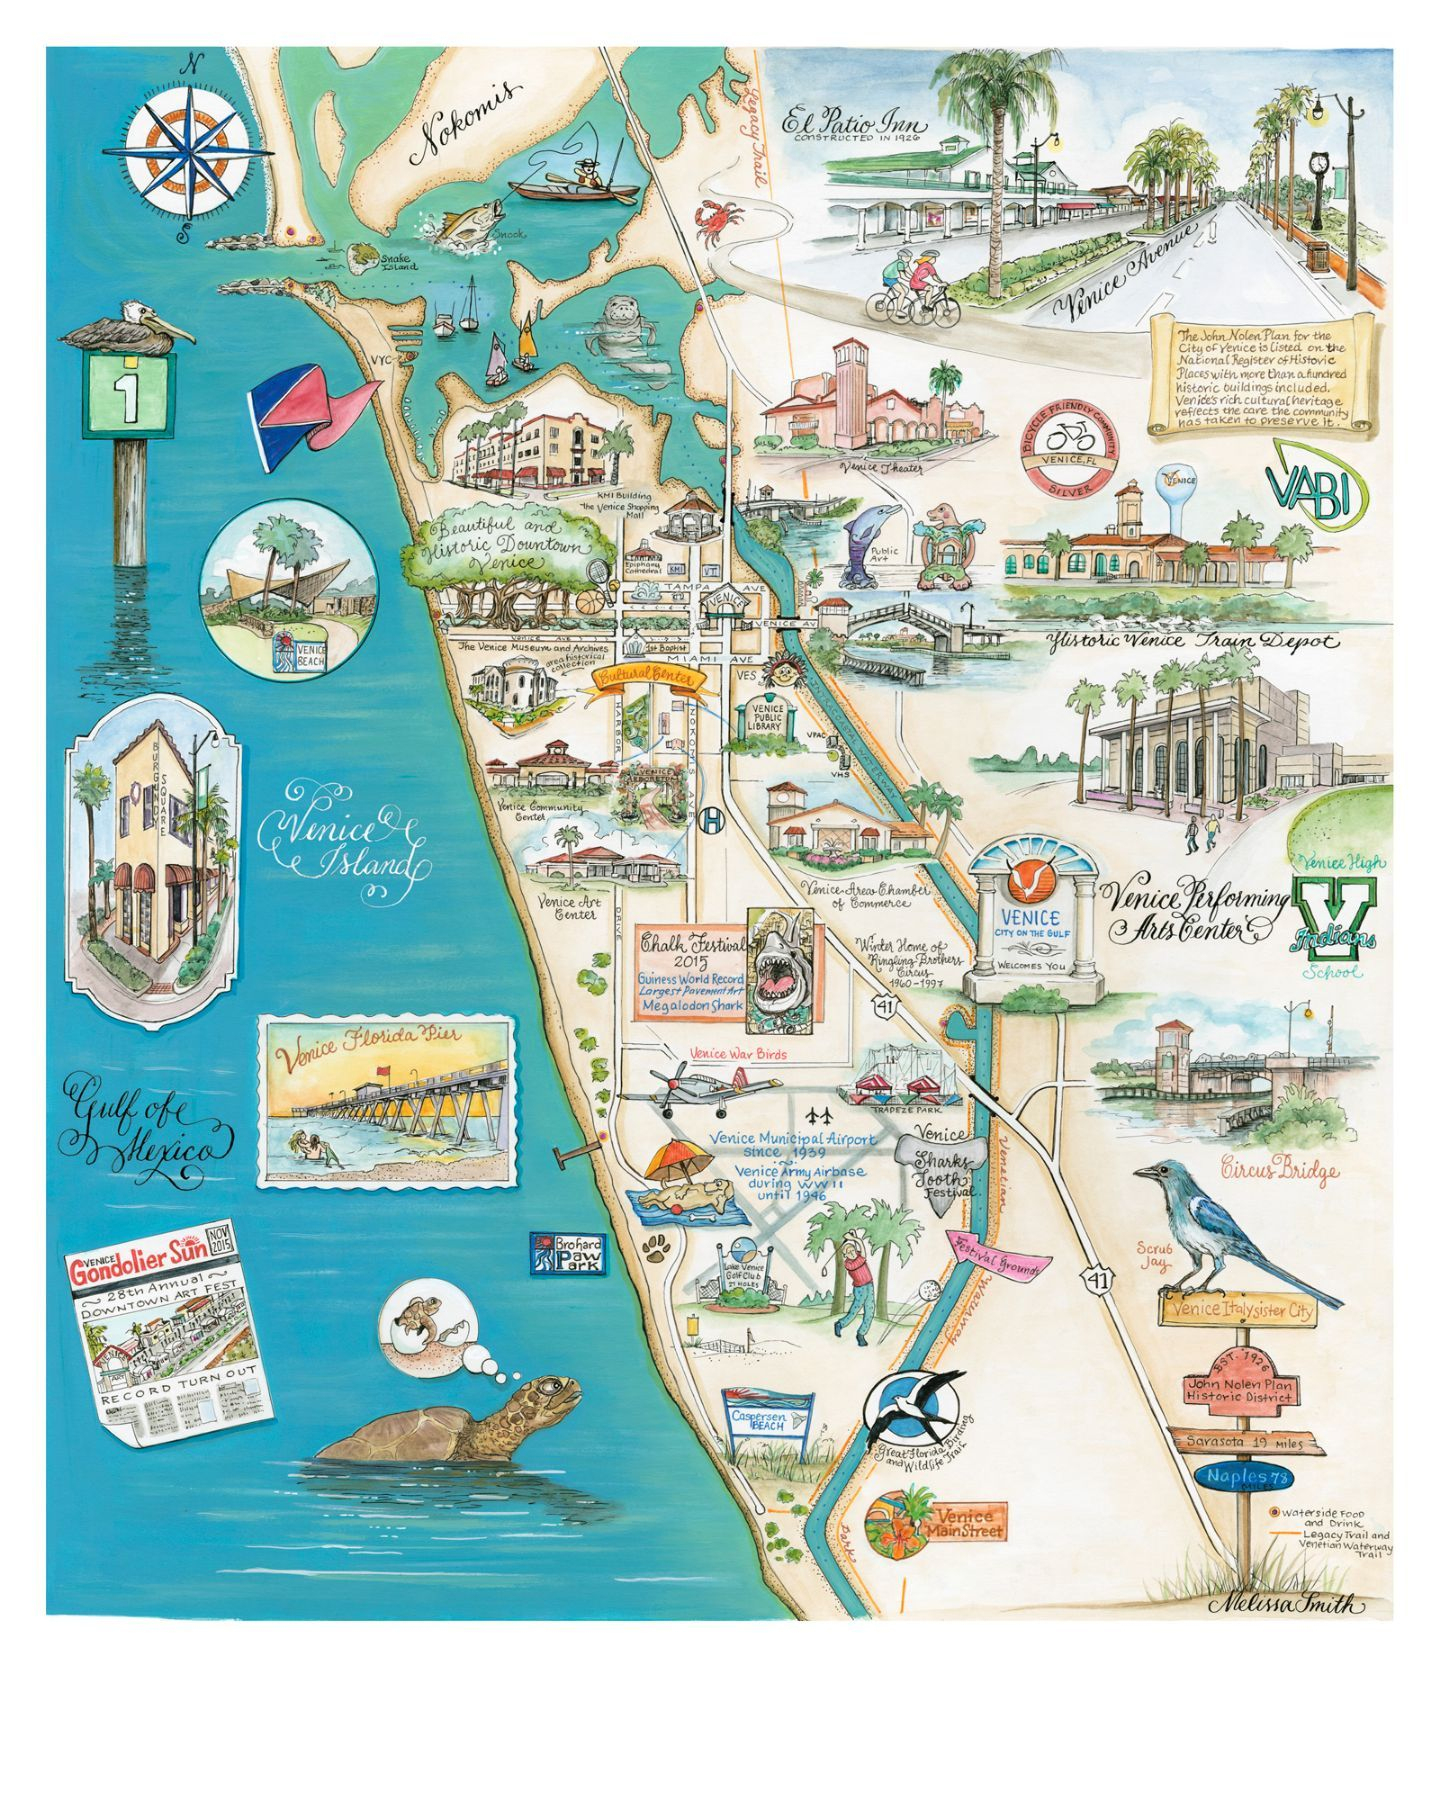 Venice, Florida Map - This Map Is One Of The Prettiest Maps I Have - Watercolor Florida Map